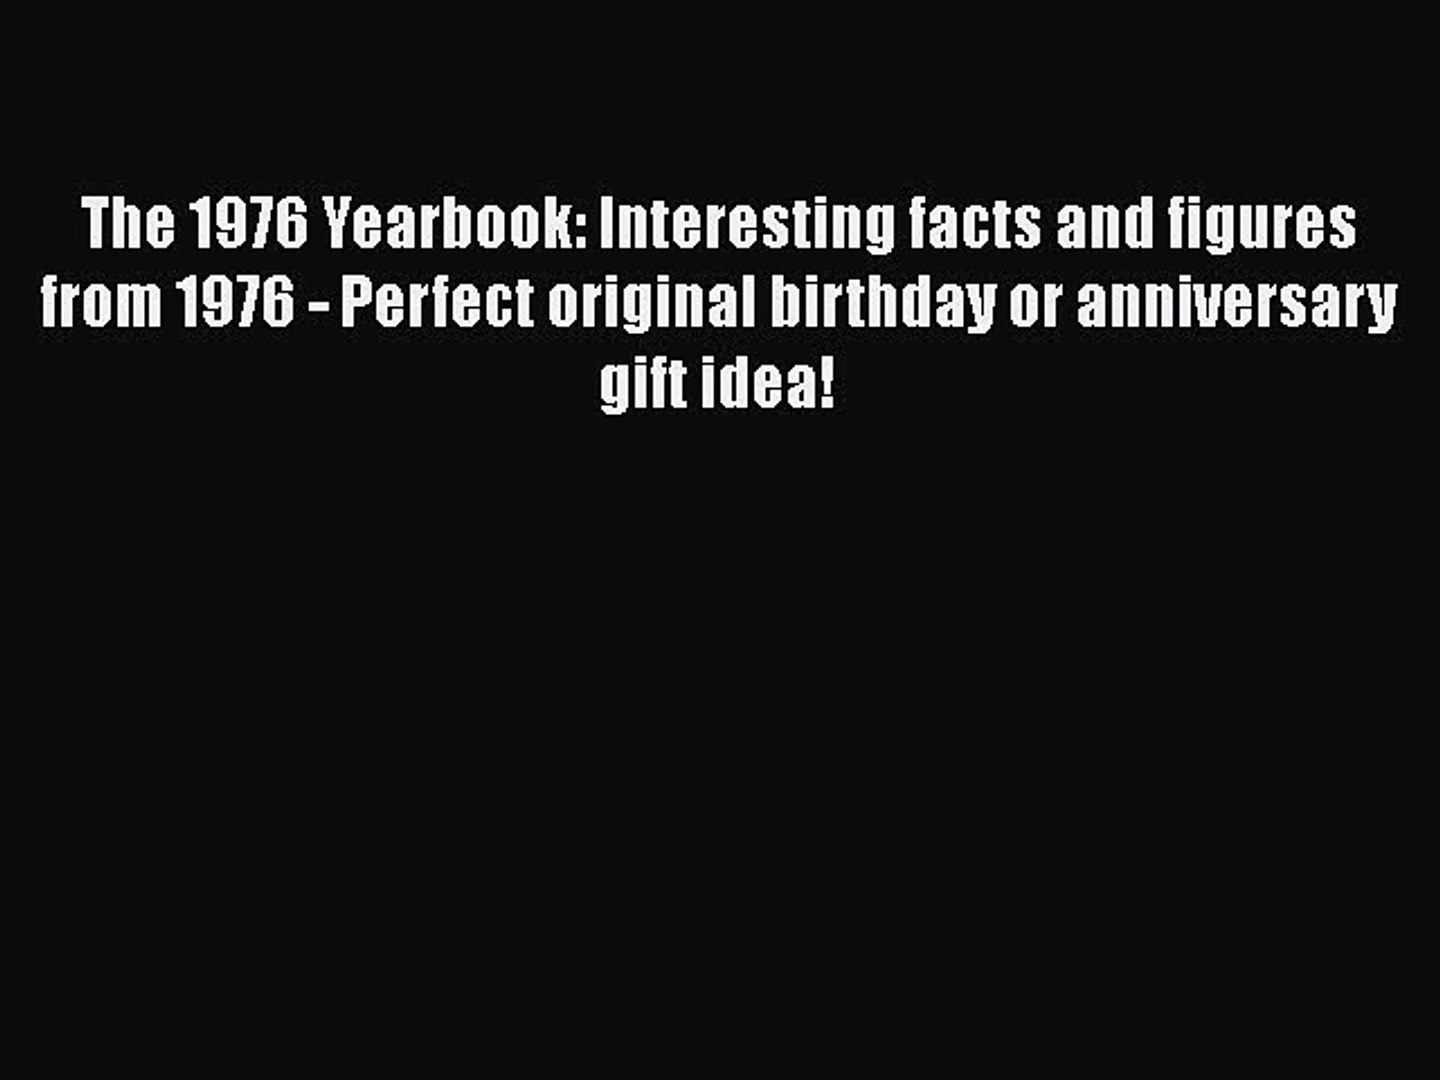 [PDF Download] The 1976 Yearbook: Interesting facts and figures from 1976 - Perfect original